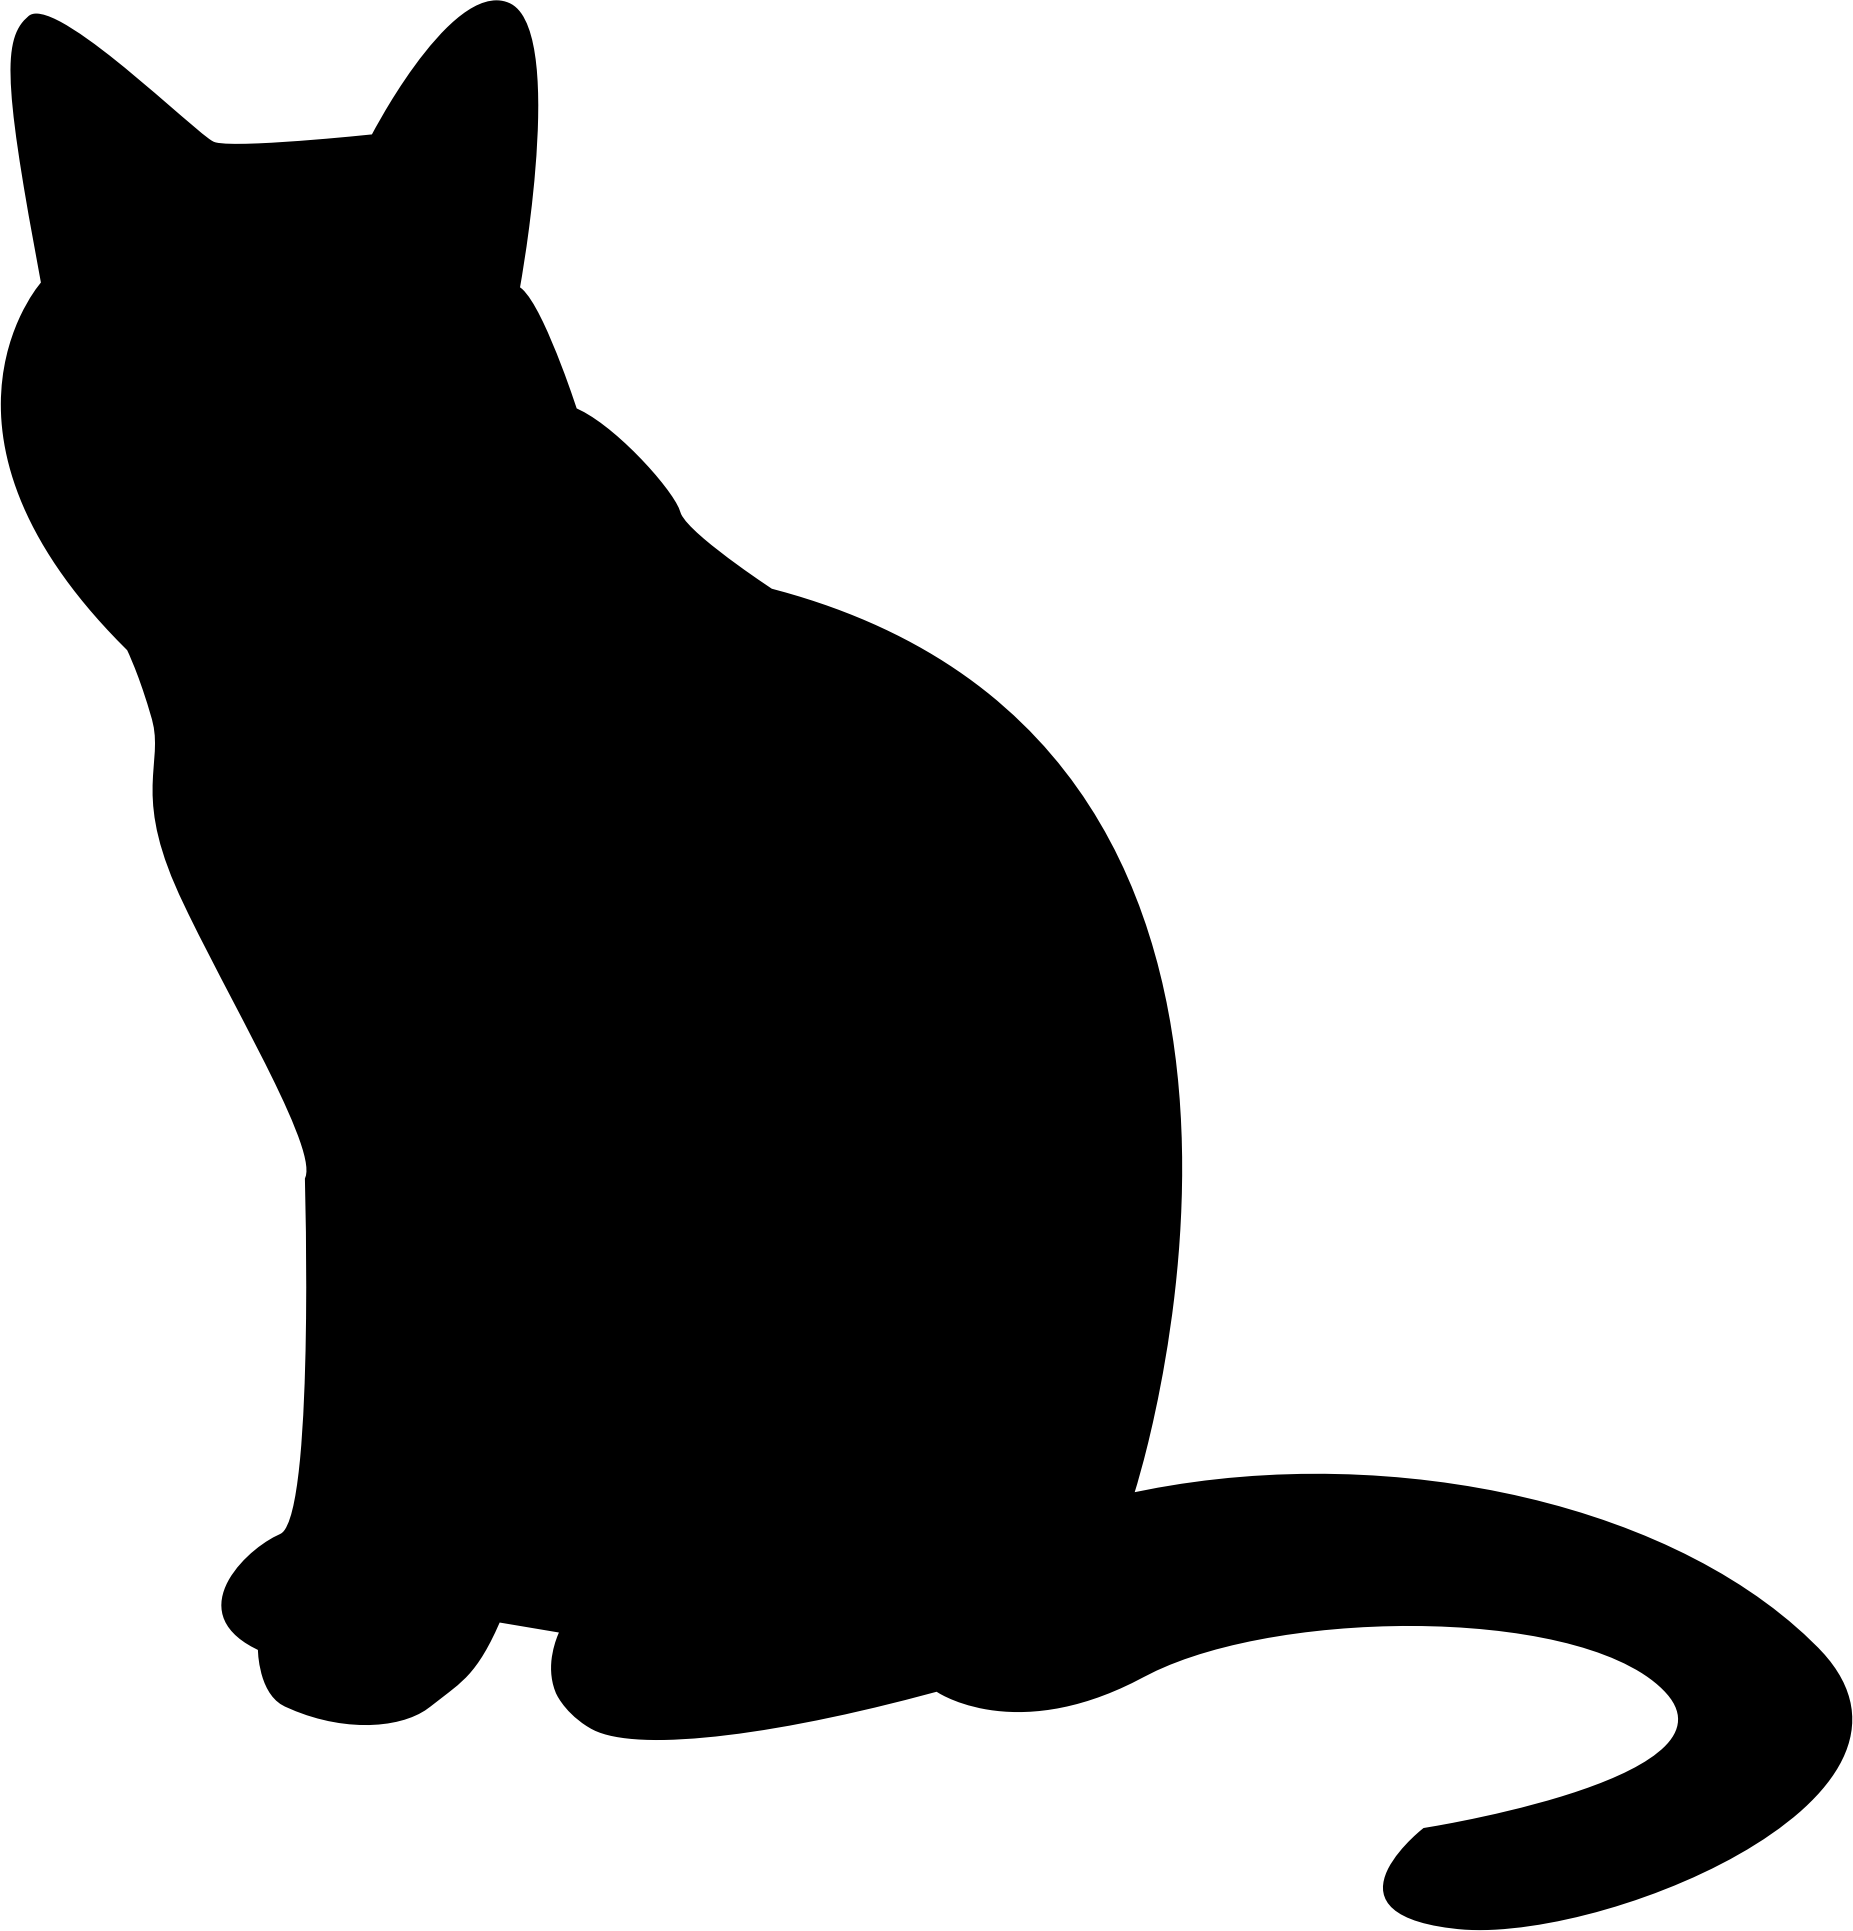 Cat silhouette png. Standing at getdrawings com